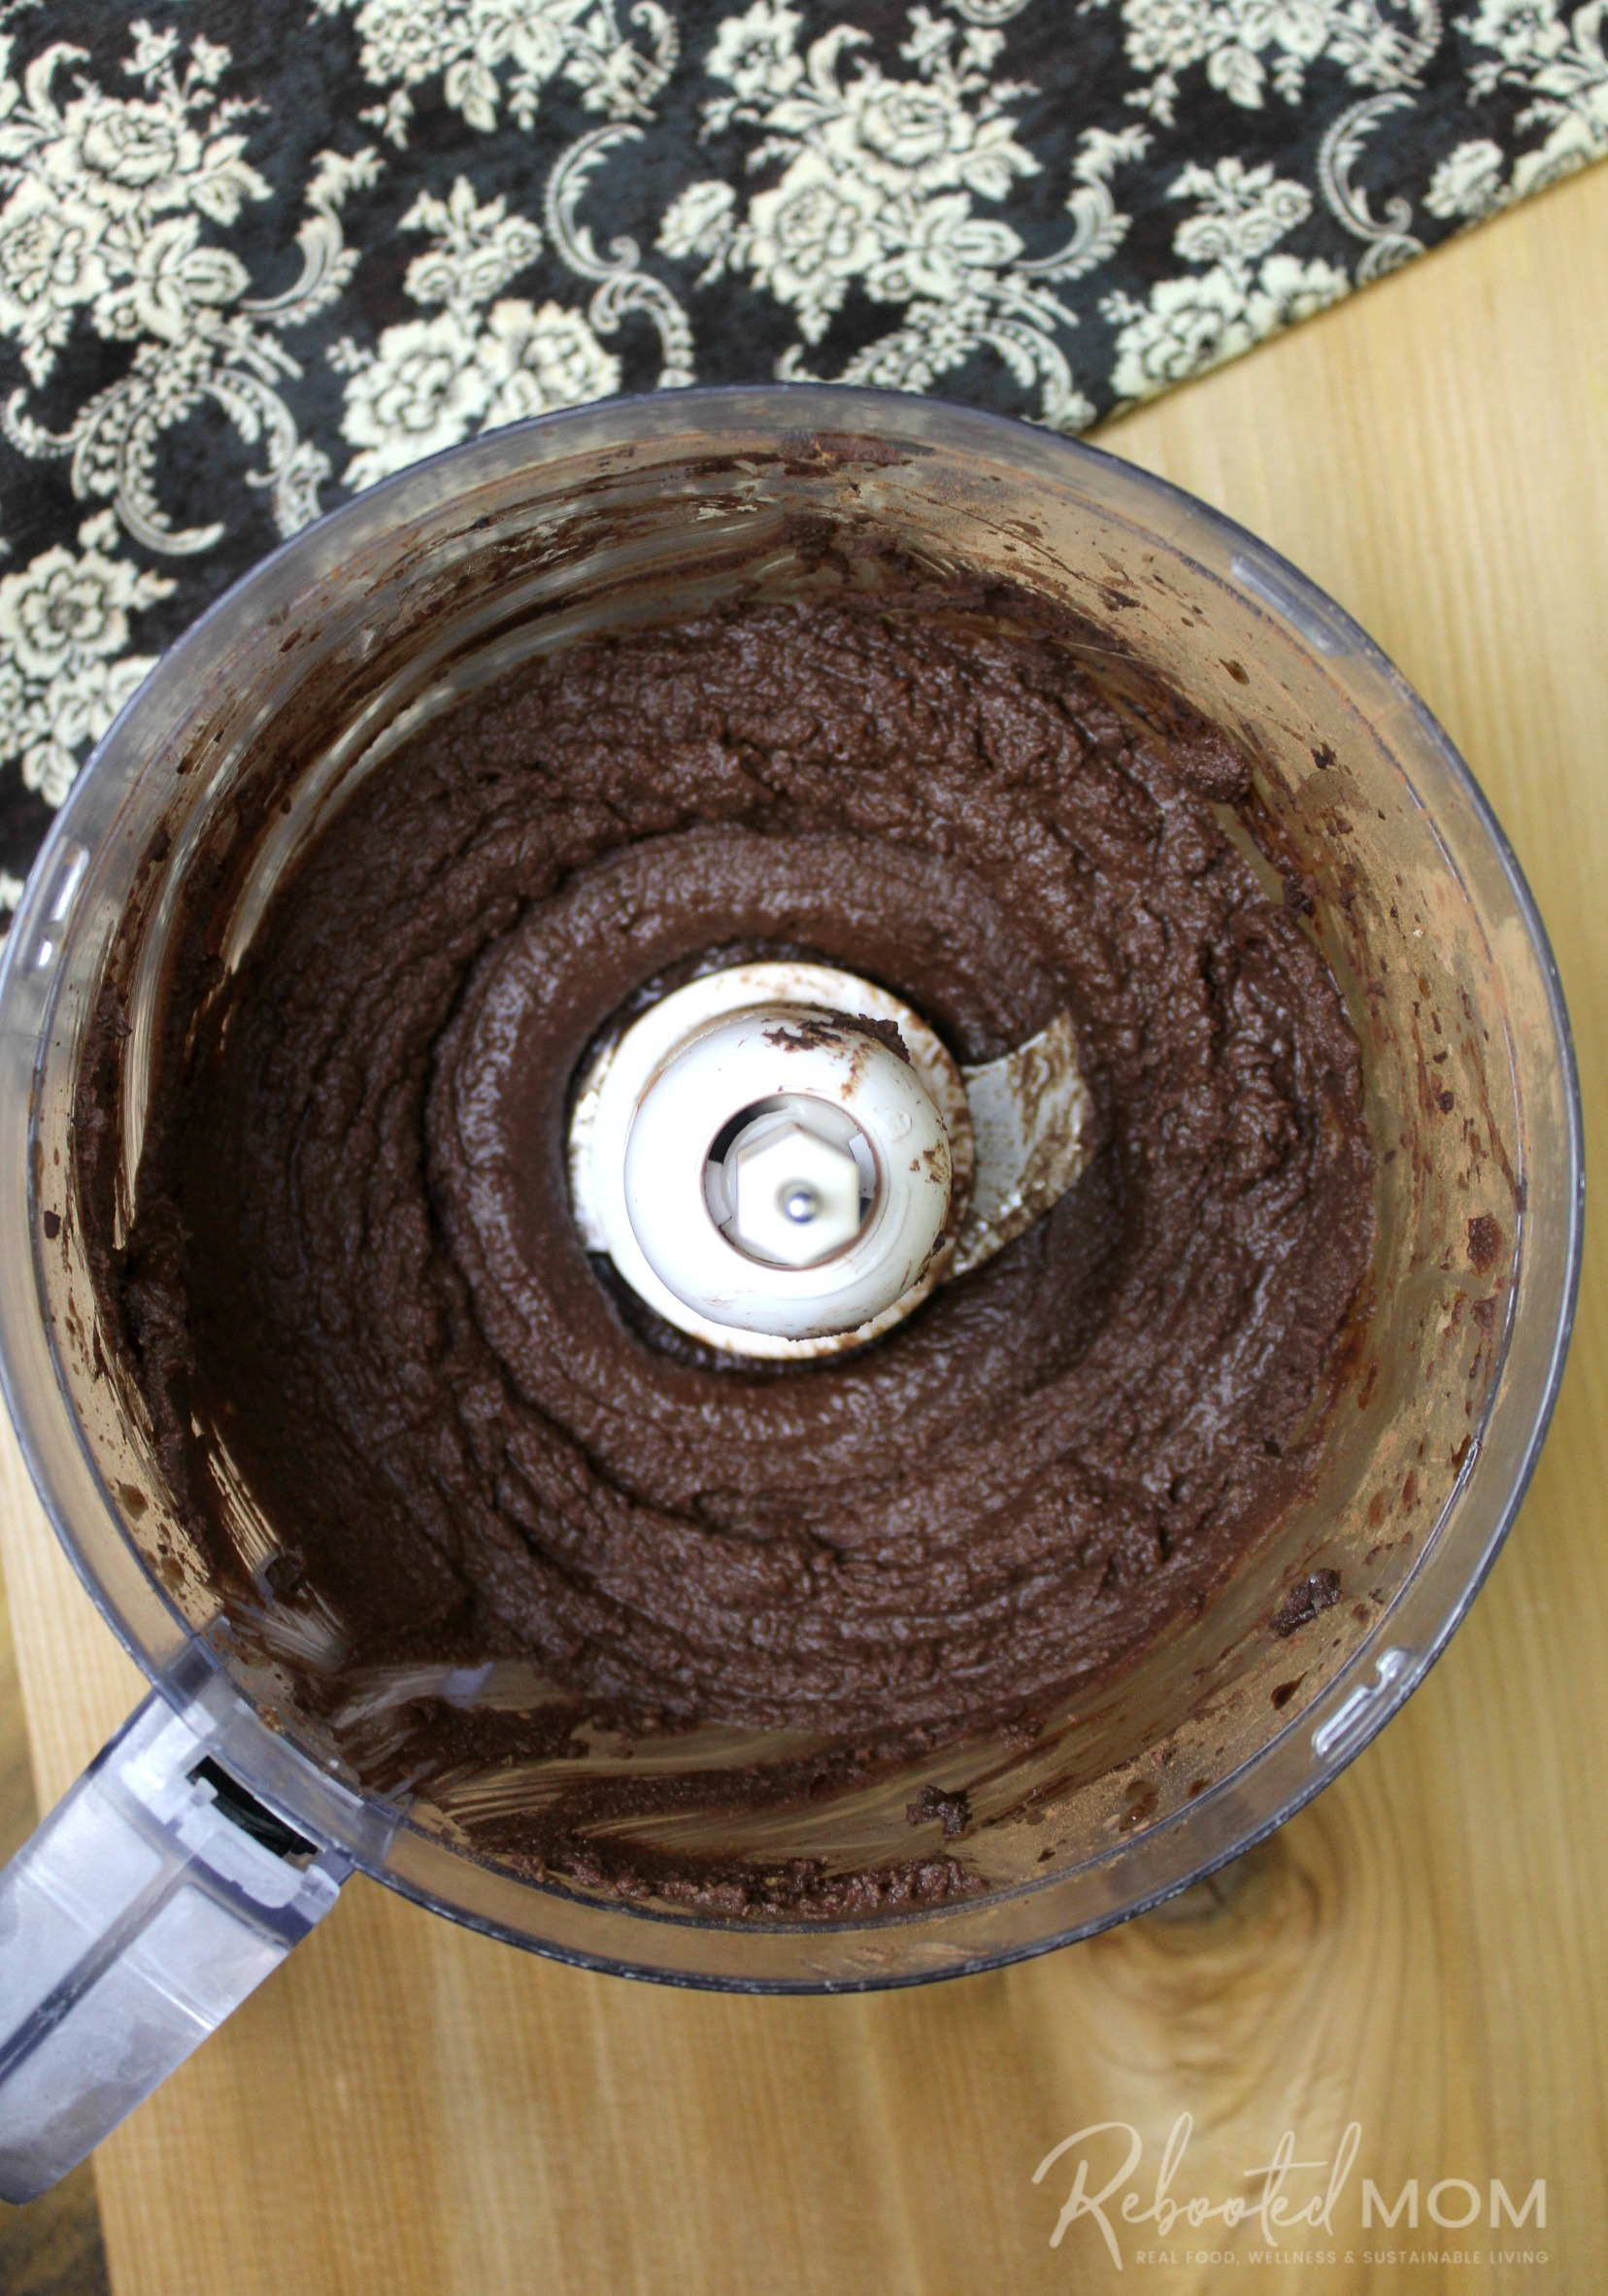 Our chocolate hummus recipe will satisfy any chocolate craving, and it's super healthy -- loaded with plenty of protein (and flavor, too!)